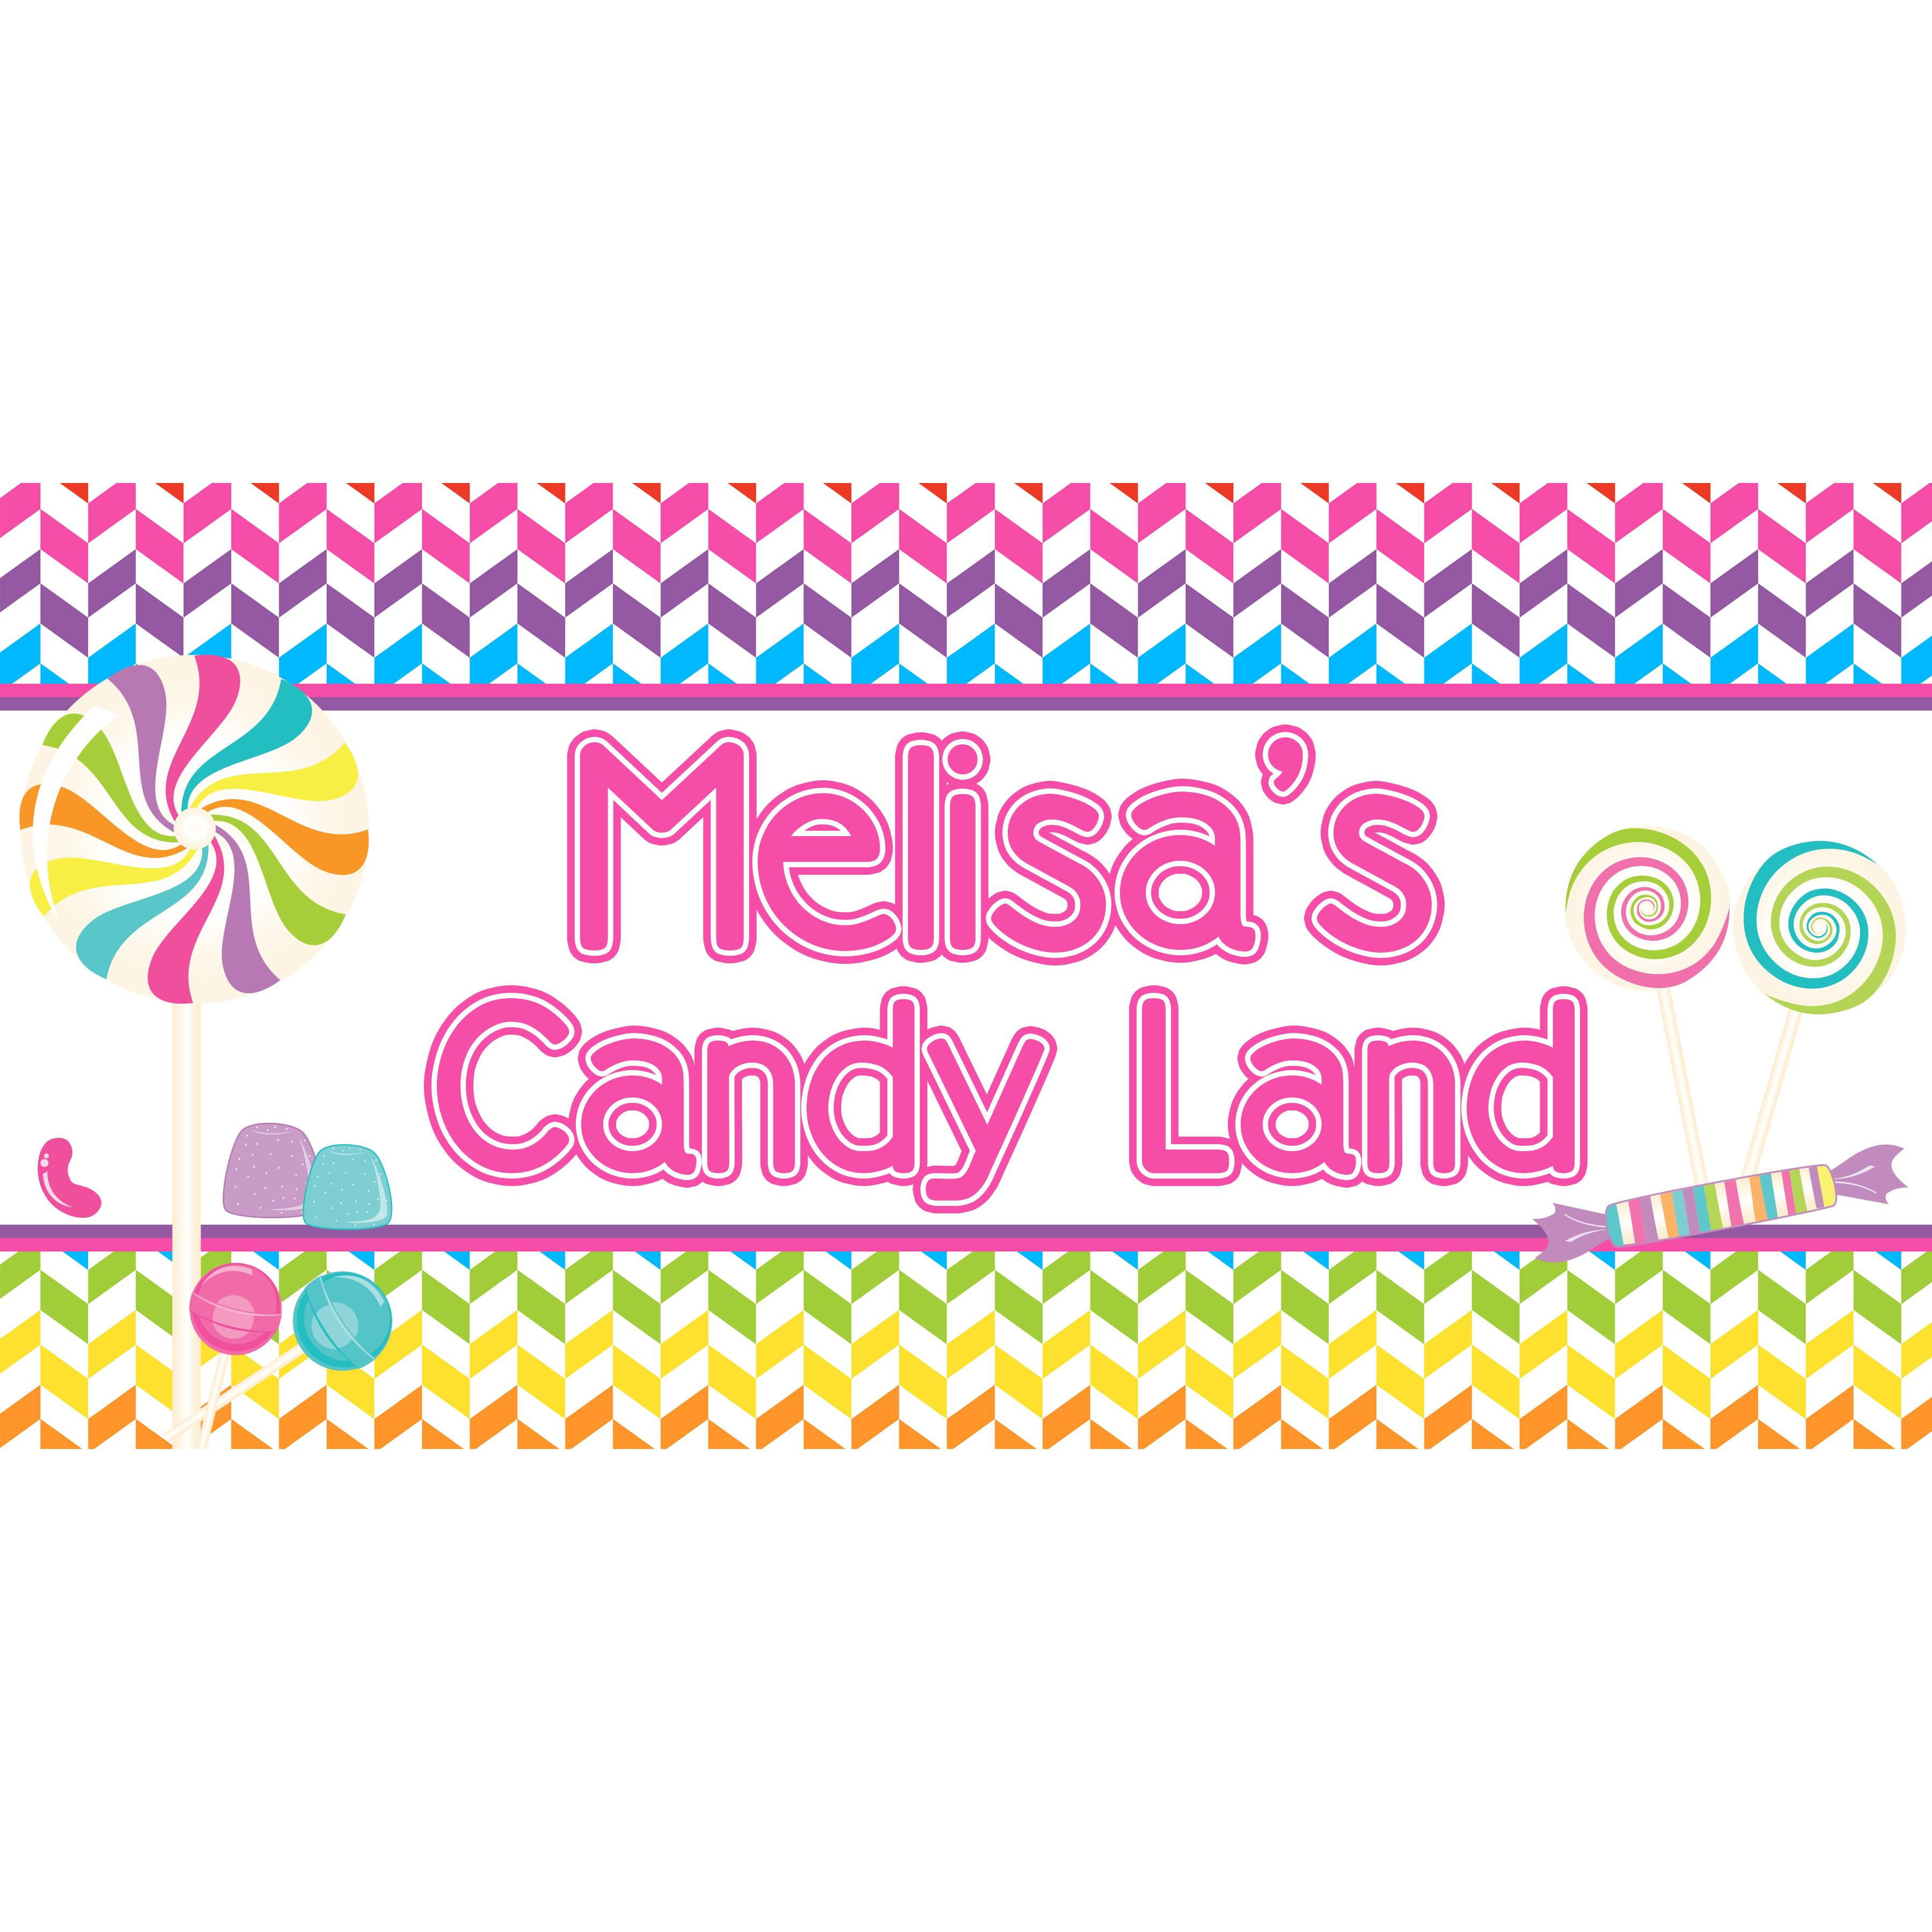 candyland birthday banners personalized ; BNR178